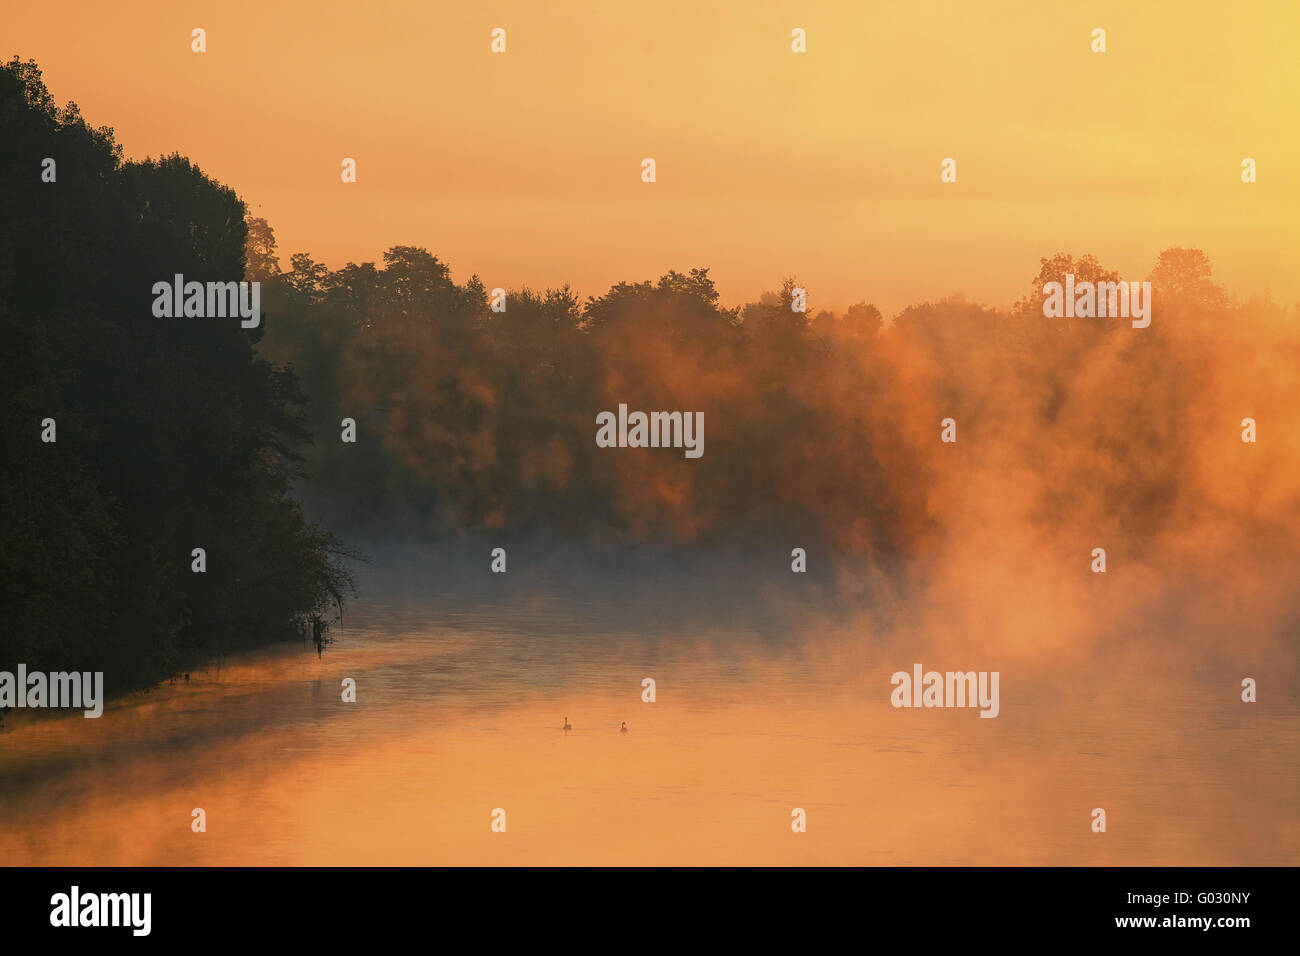 Early morning mist over Dordogne River, France - Stock Image